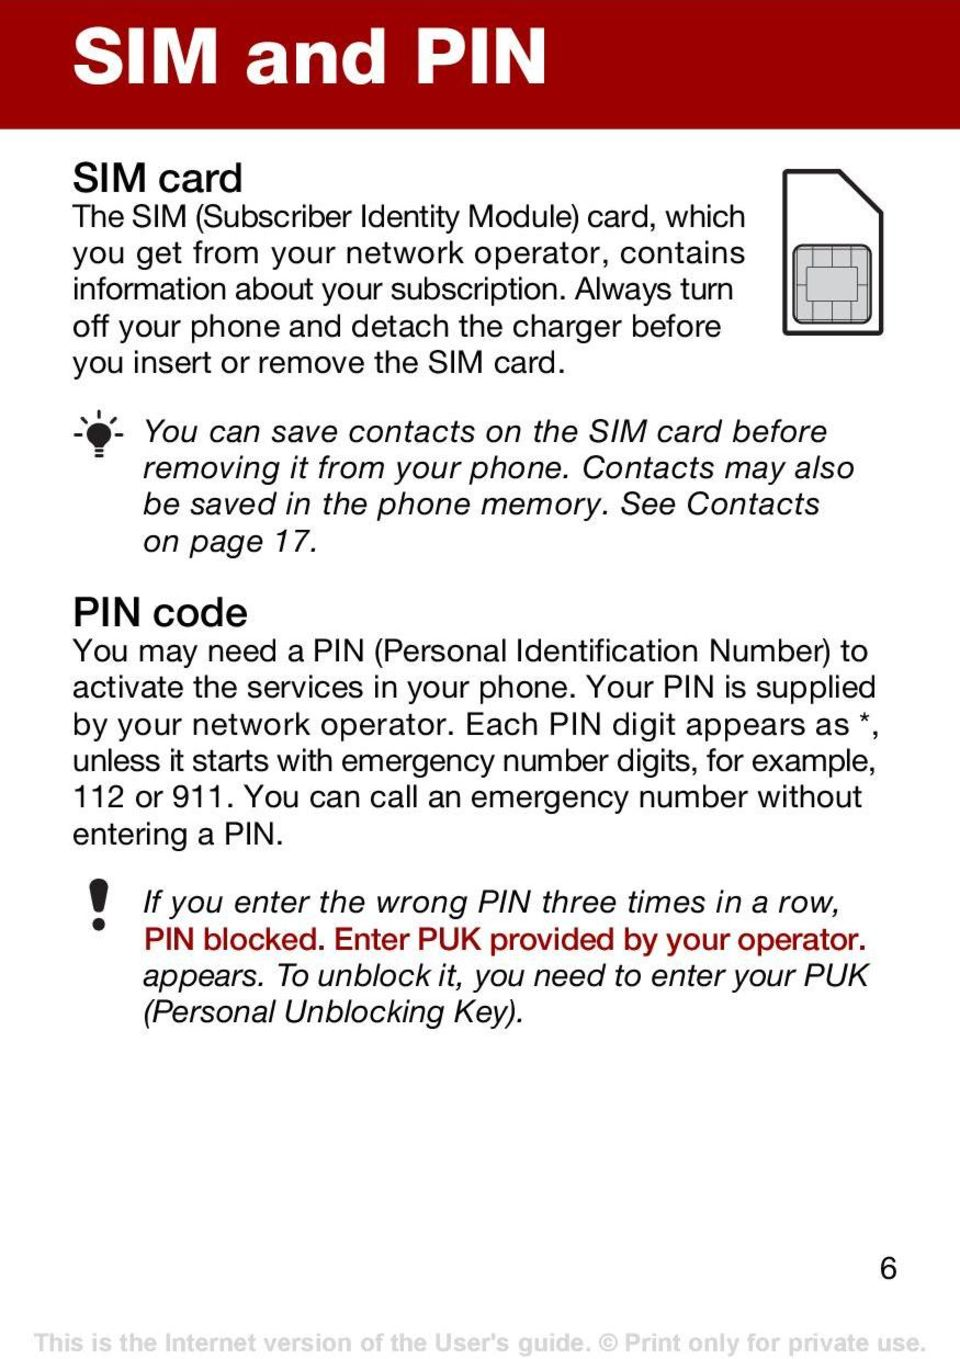 Contacts may also be saved in the phone memory. See Contacts on page 17. PIN code You may need a PIN (Personal Identification Number) to activate the services in your phone.